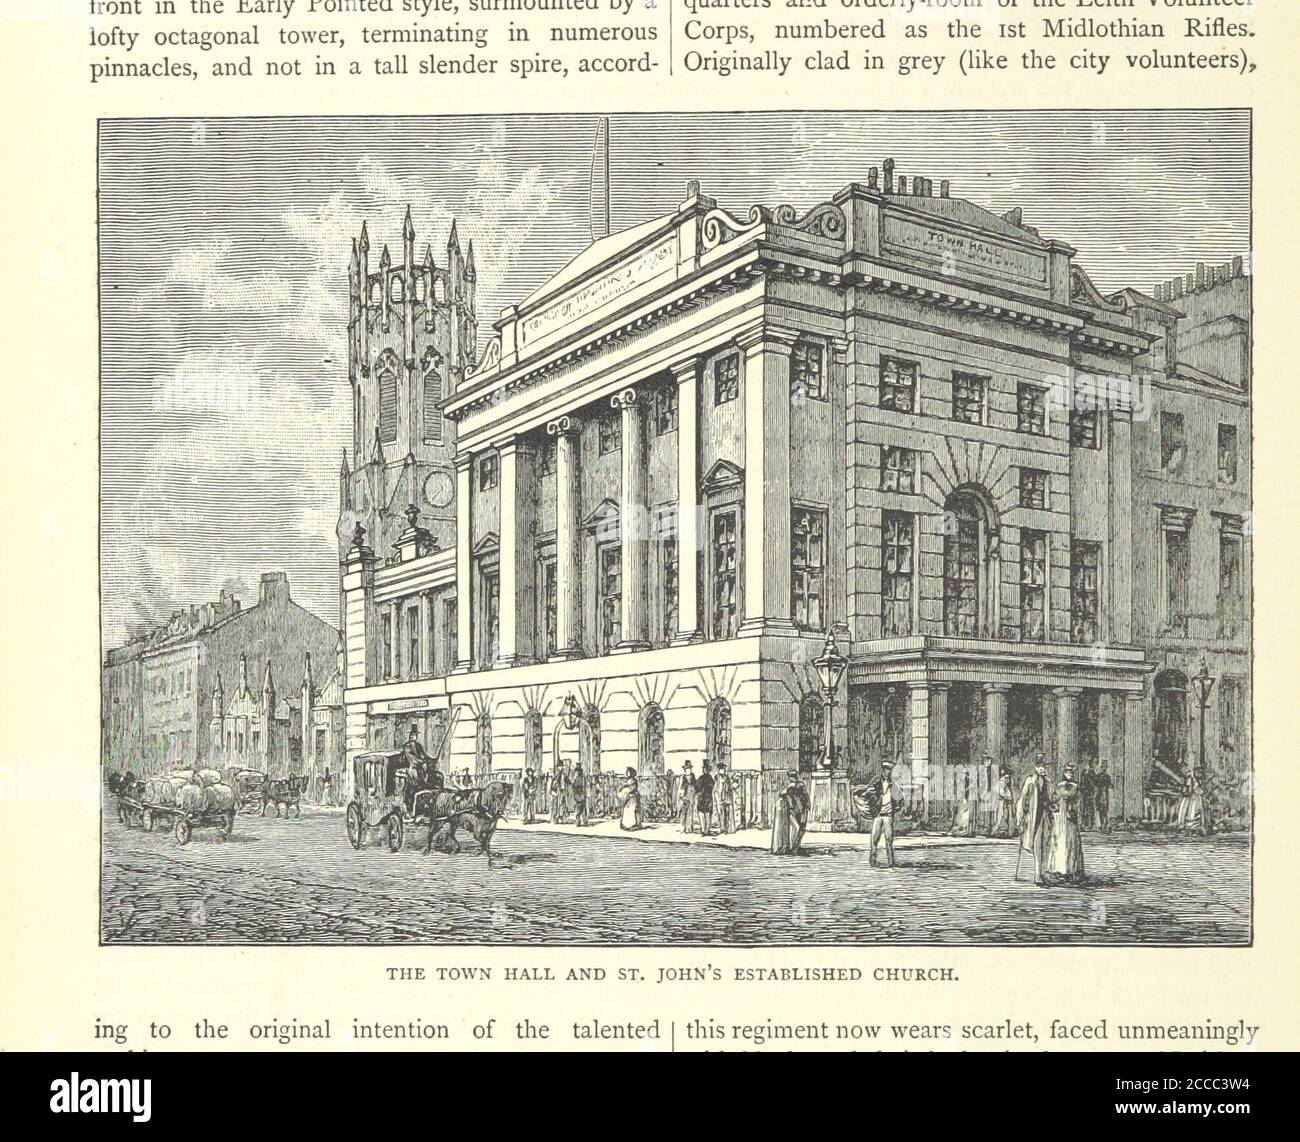 Cassell's Old and New Edinburgh ... Illustrated, etc.jpg - 2CCC3W4 Stock Photo